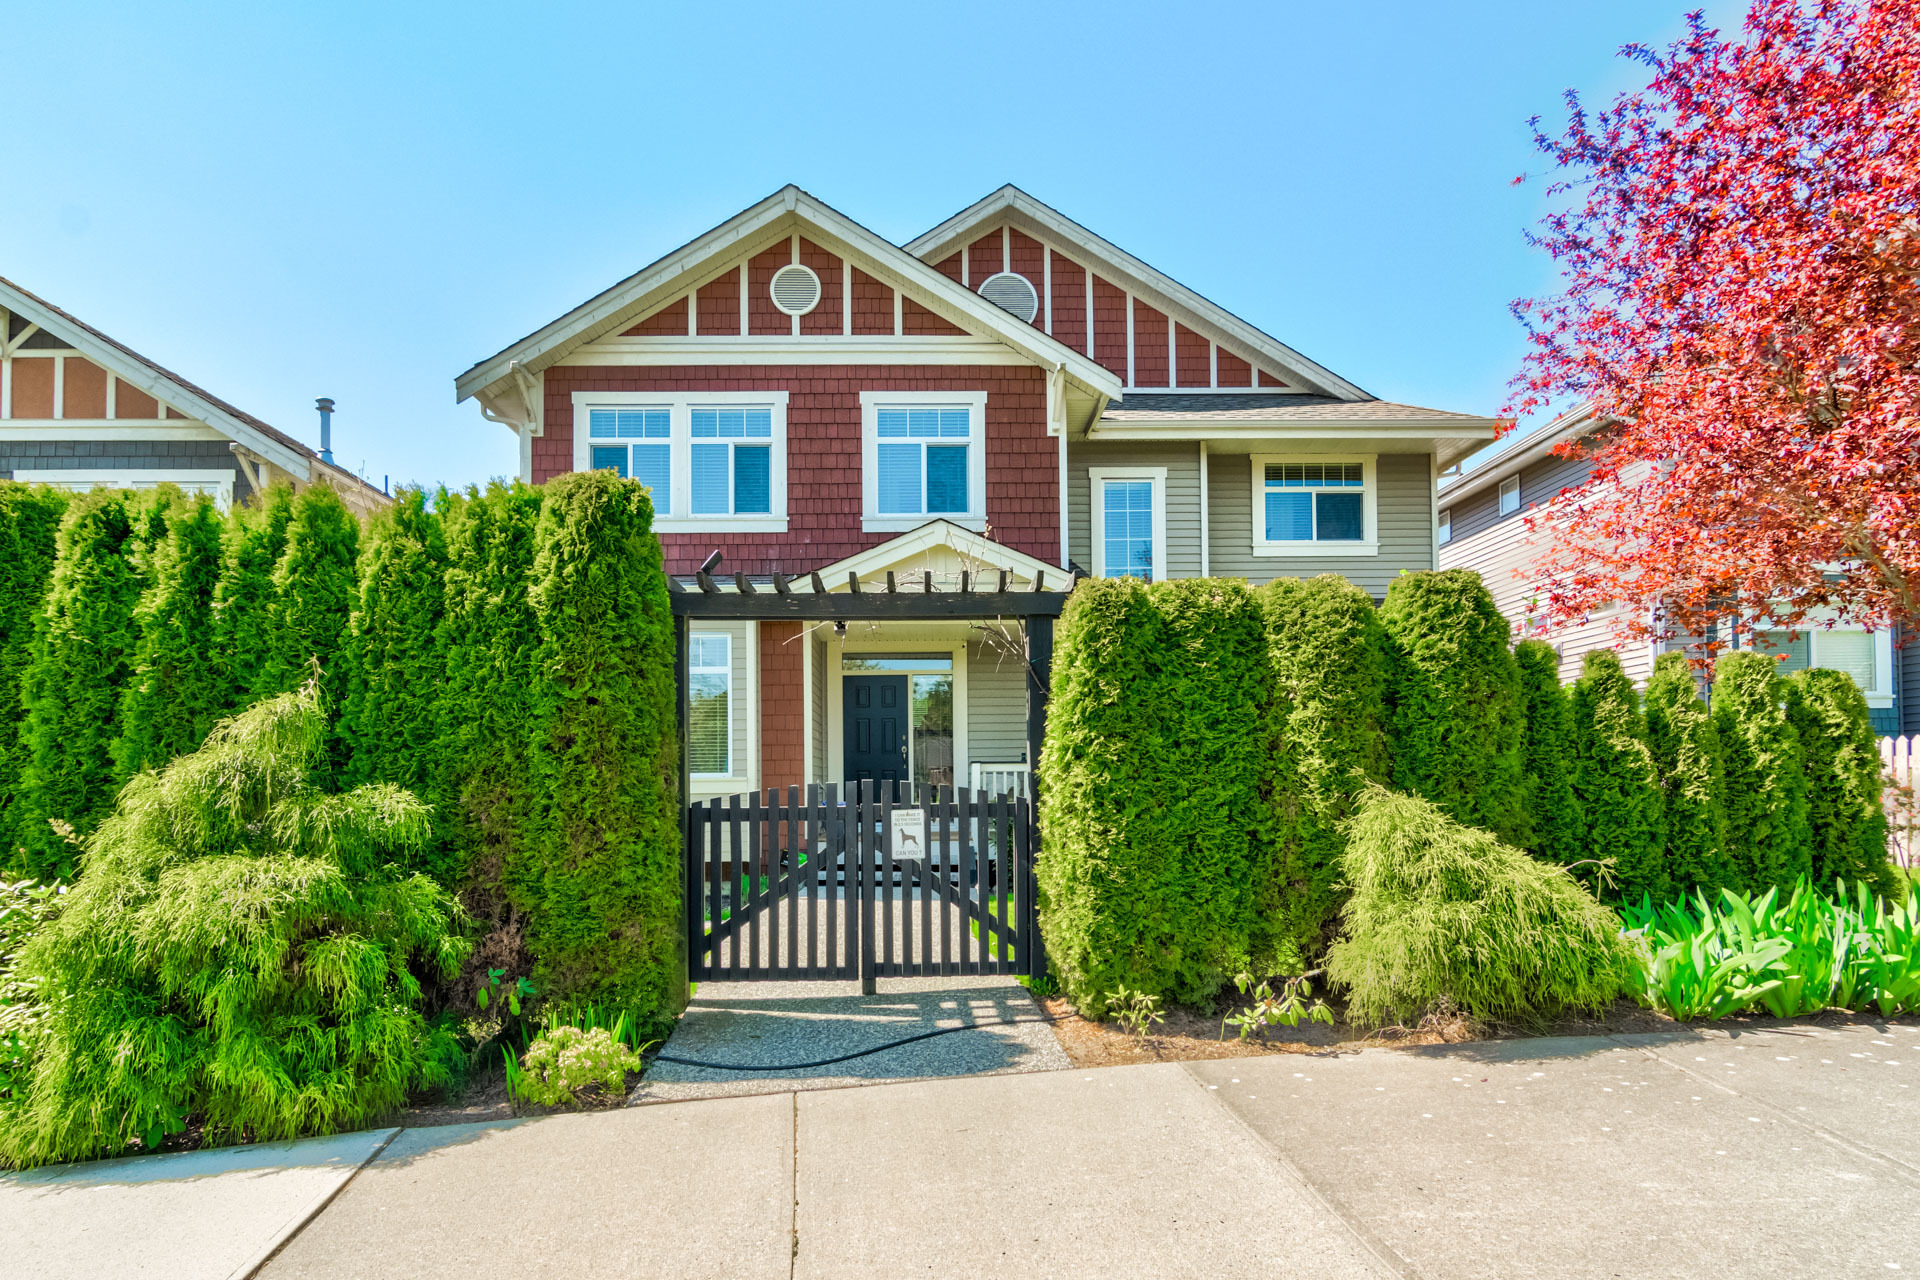 32374_1 at 6723 206 Street, Willoughby Heights, Langley